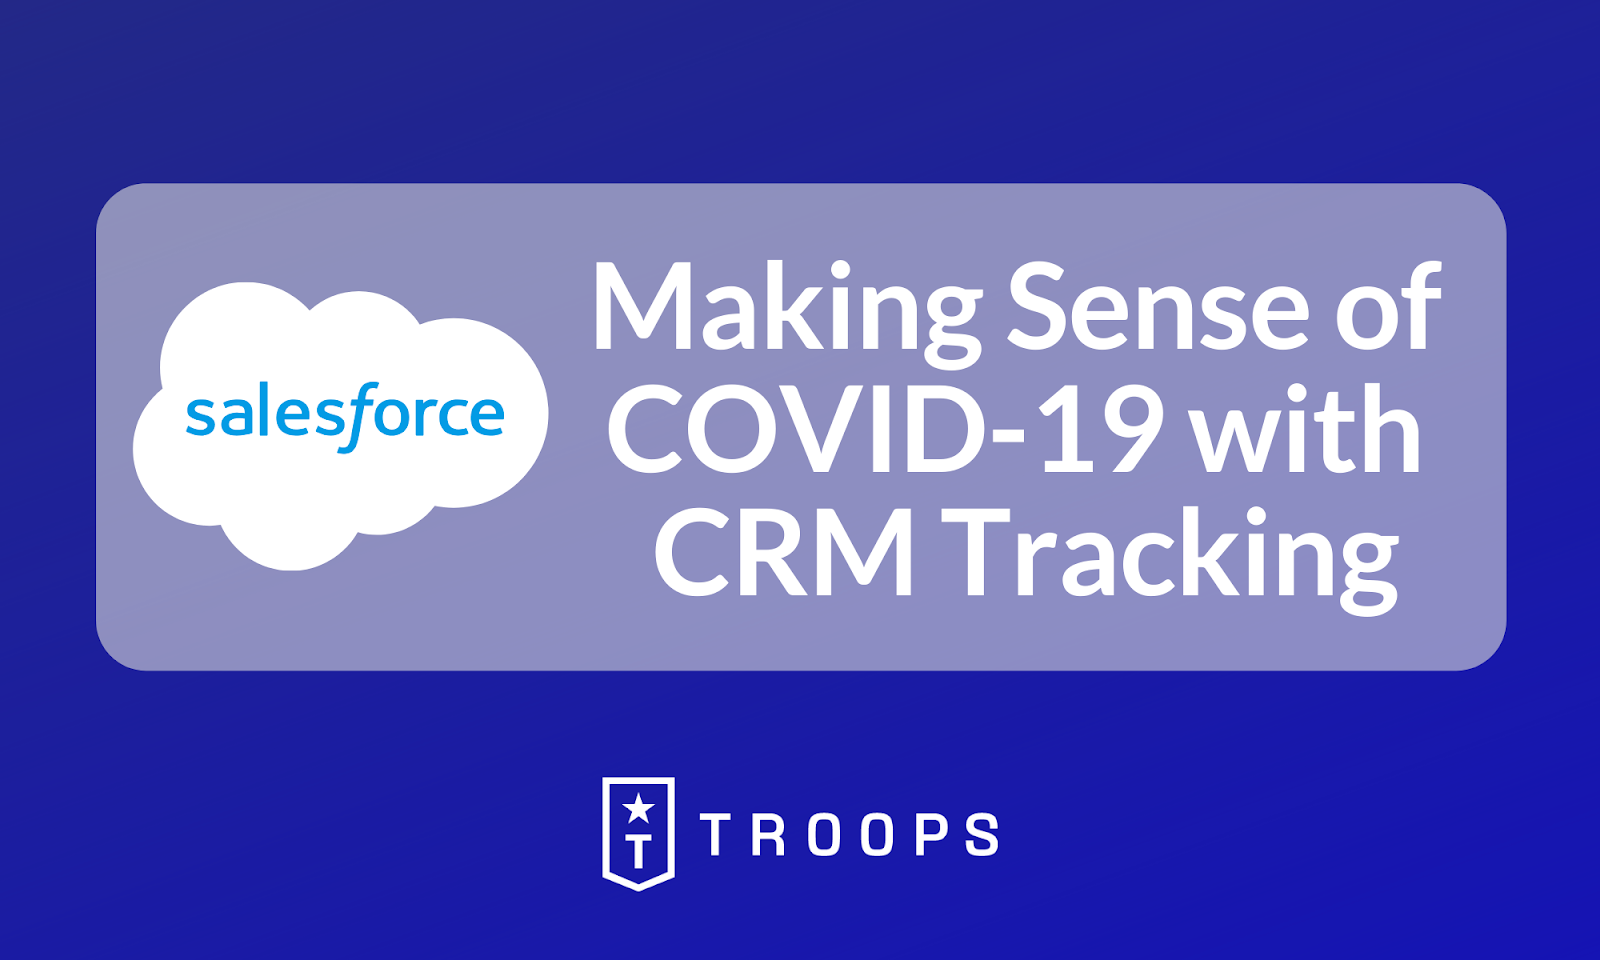 Making Sense of COVID-19 with CRM Tracking